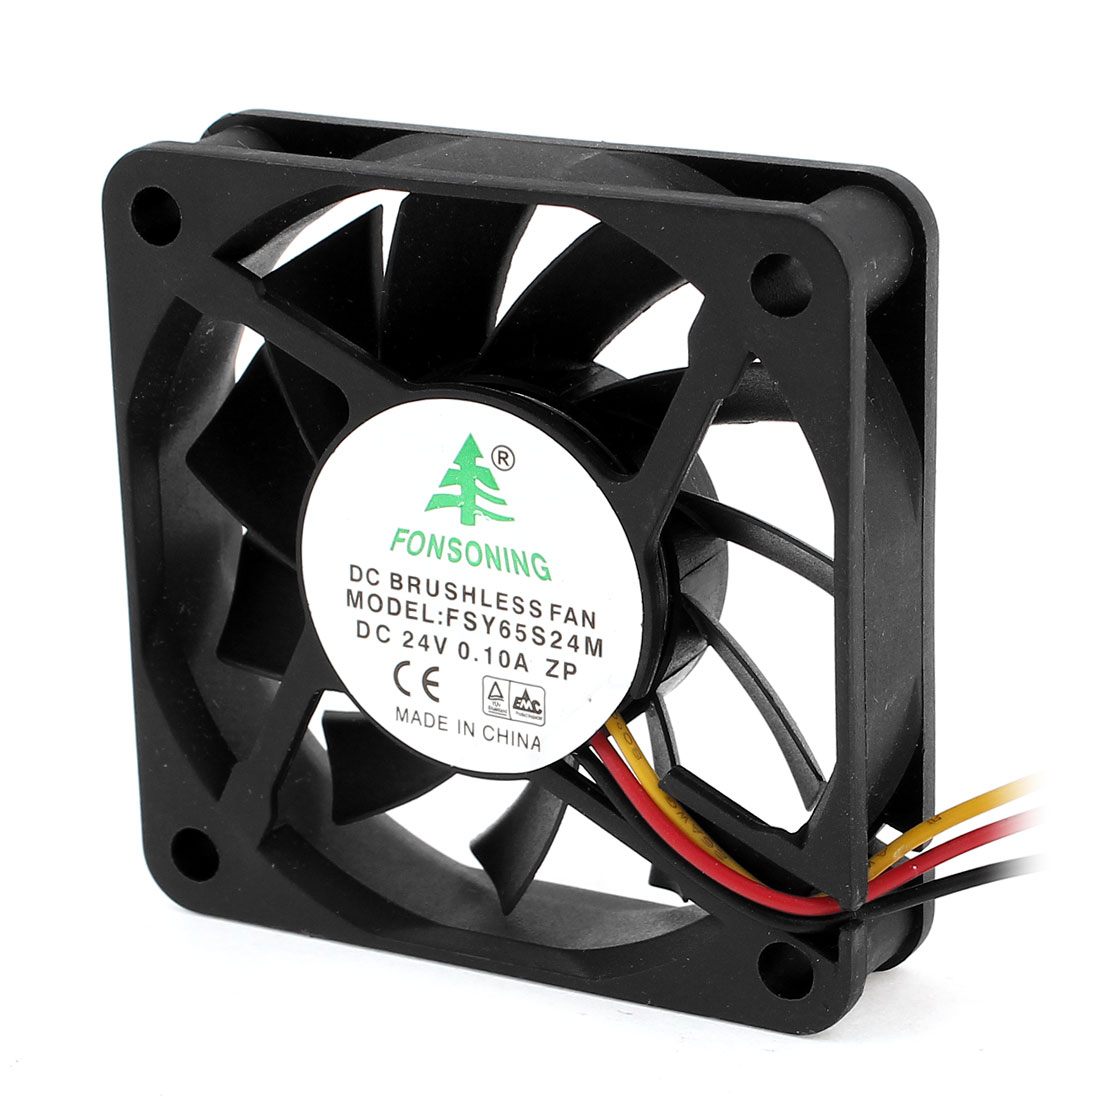 DC 24V 0.1A 60mmx15mm 3 Pin Cooling Fan Black for PC Computer Cases CPU Cooler